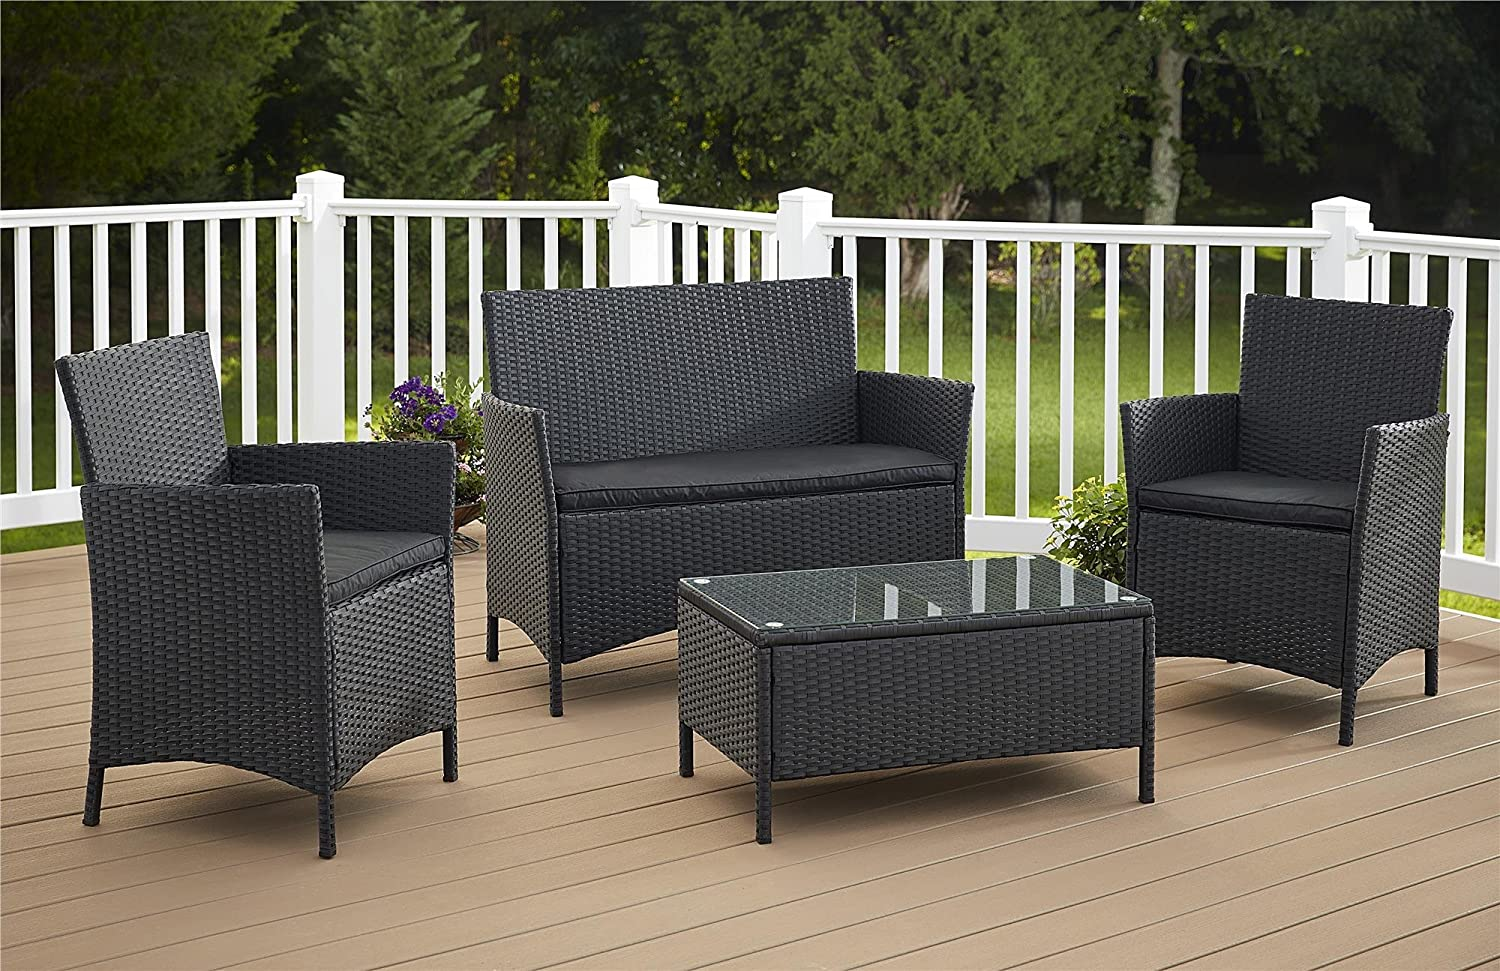 Amazon.com Cosco Outdoor Conversation Set 4 Piece Black Wicker Garden u0026 Outdoor & Amazon.com: Cosco Outdoor Conversation Set 4 Piece Black Wicker ...